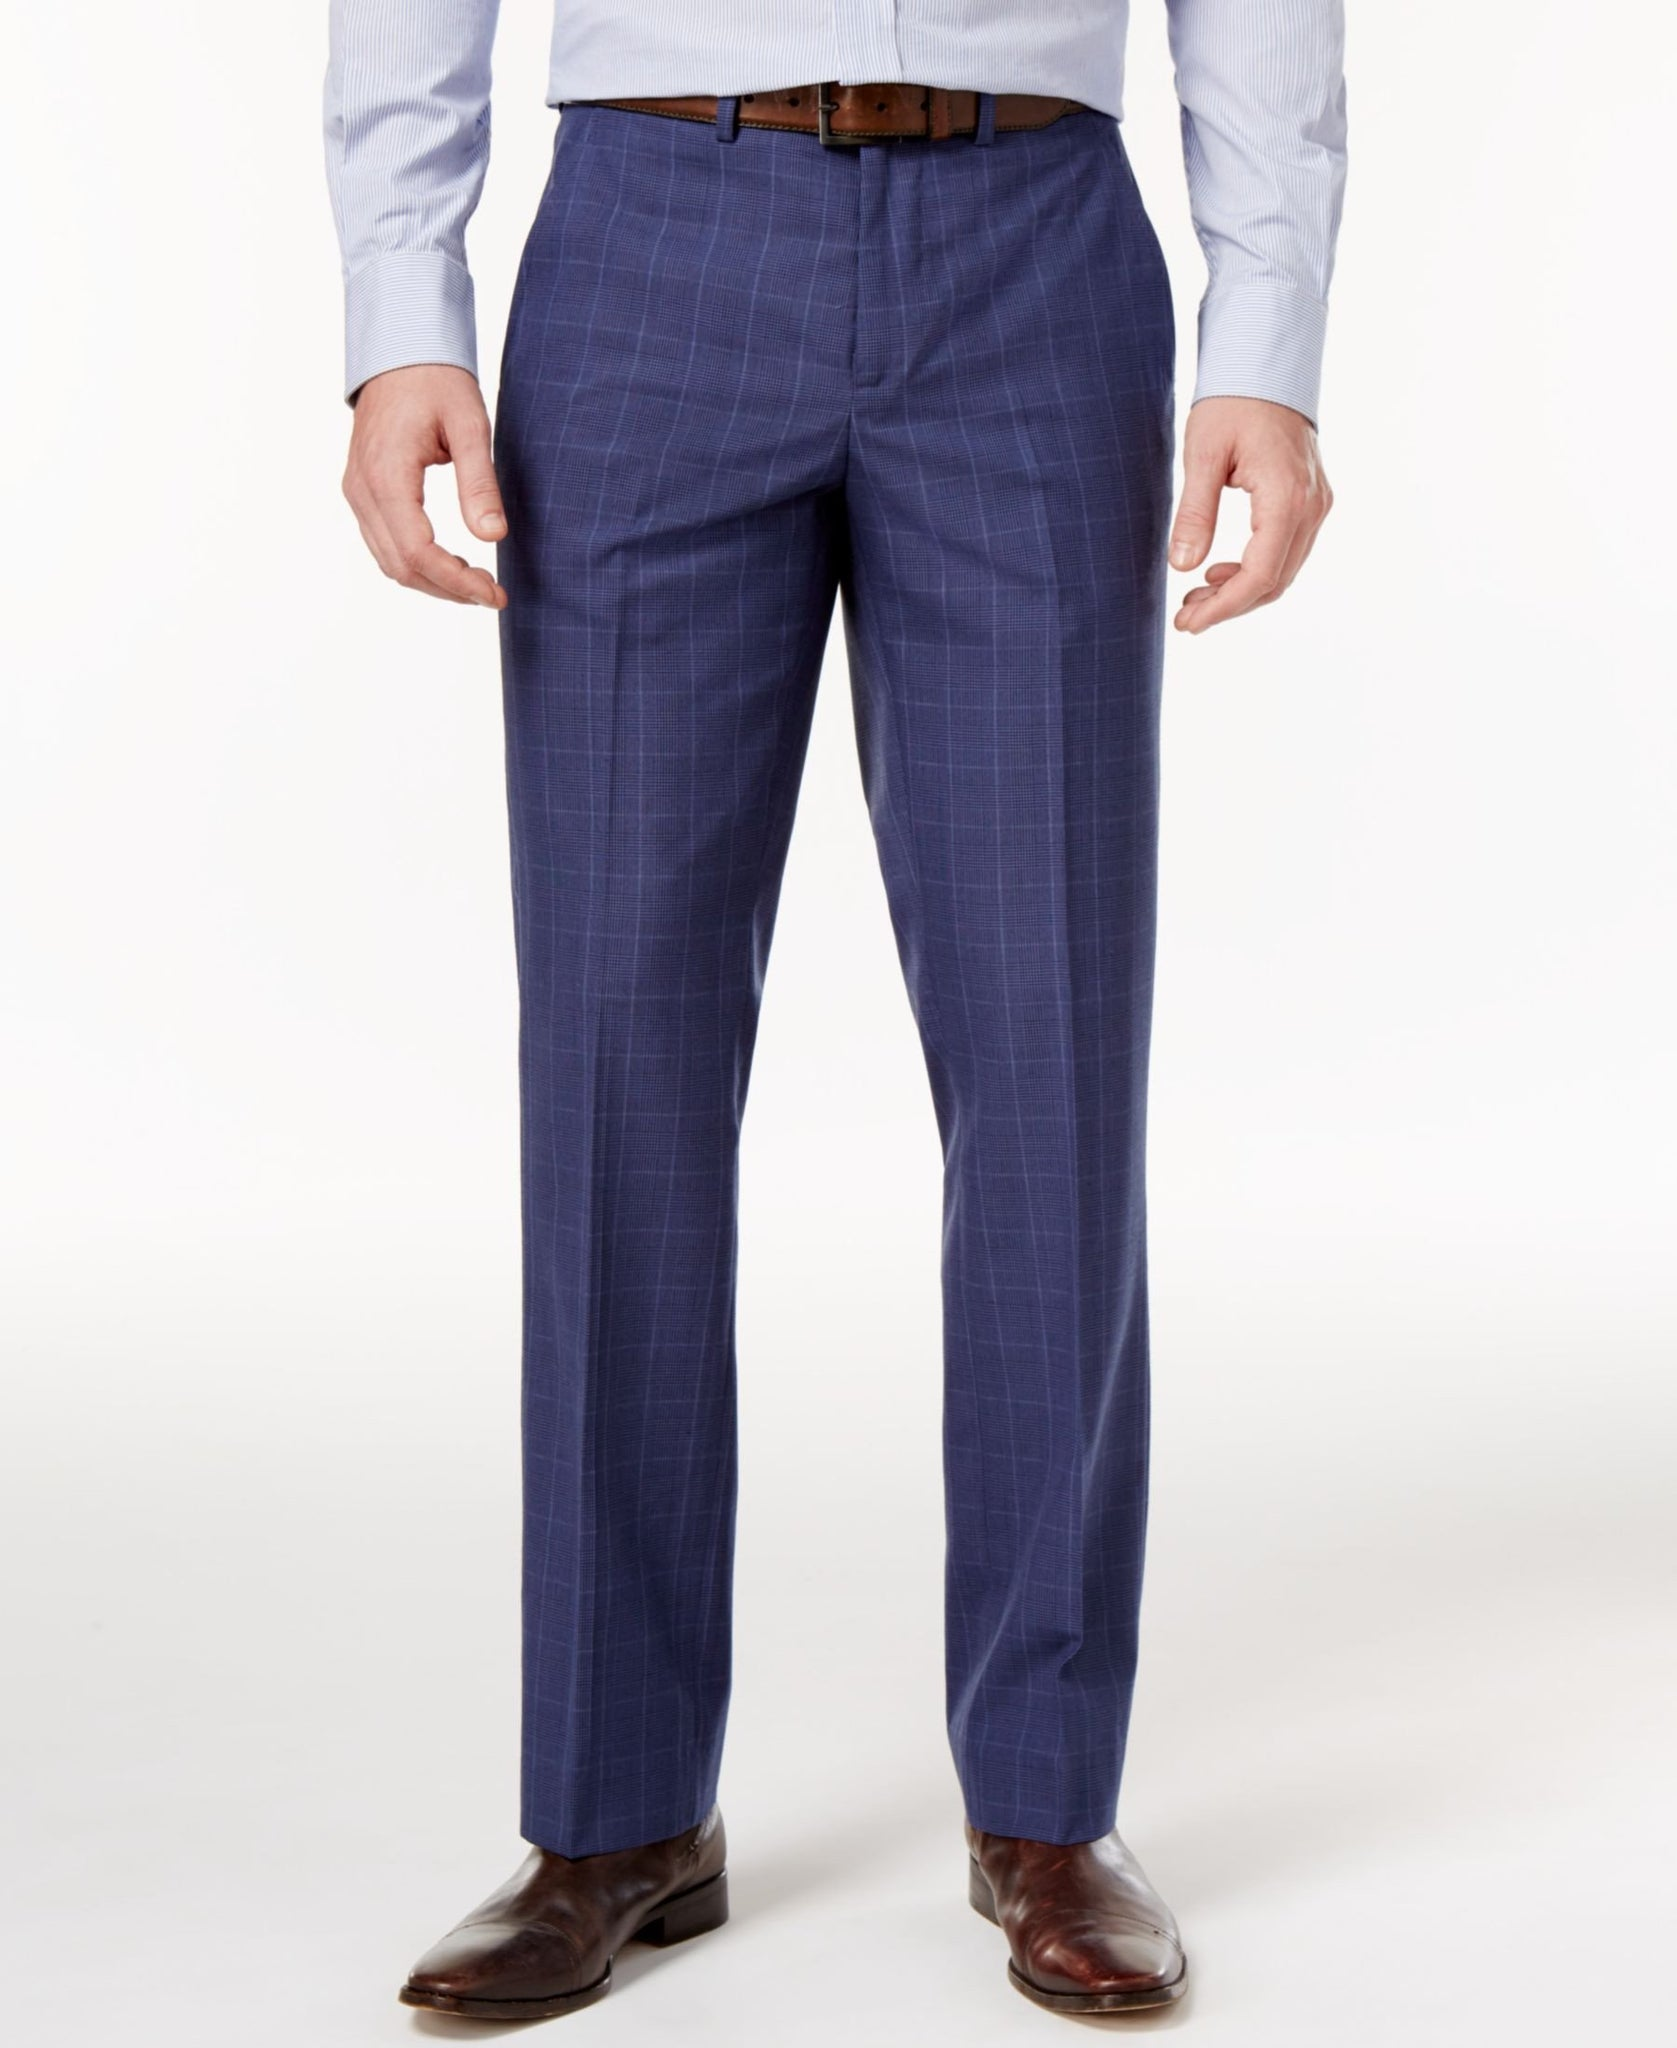 Nautica Men's Slim-Fit Blue Glen Plaid Dress Pants